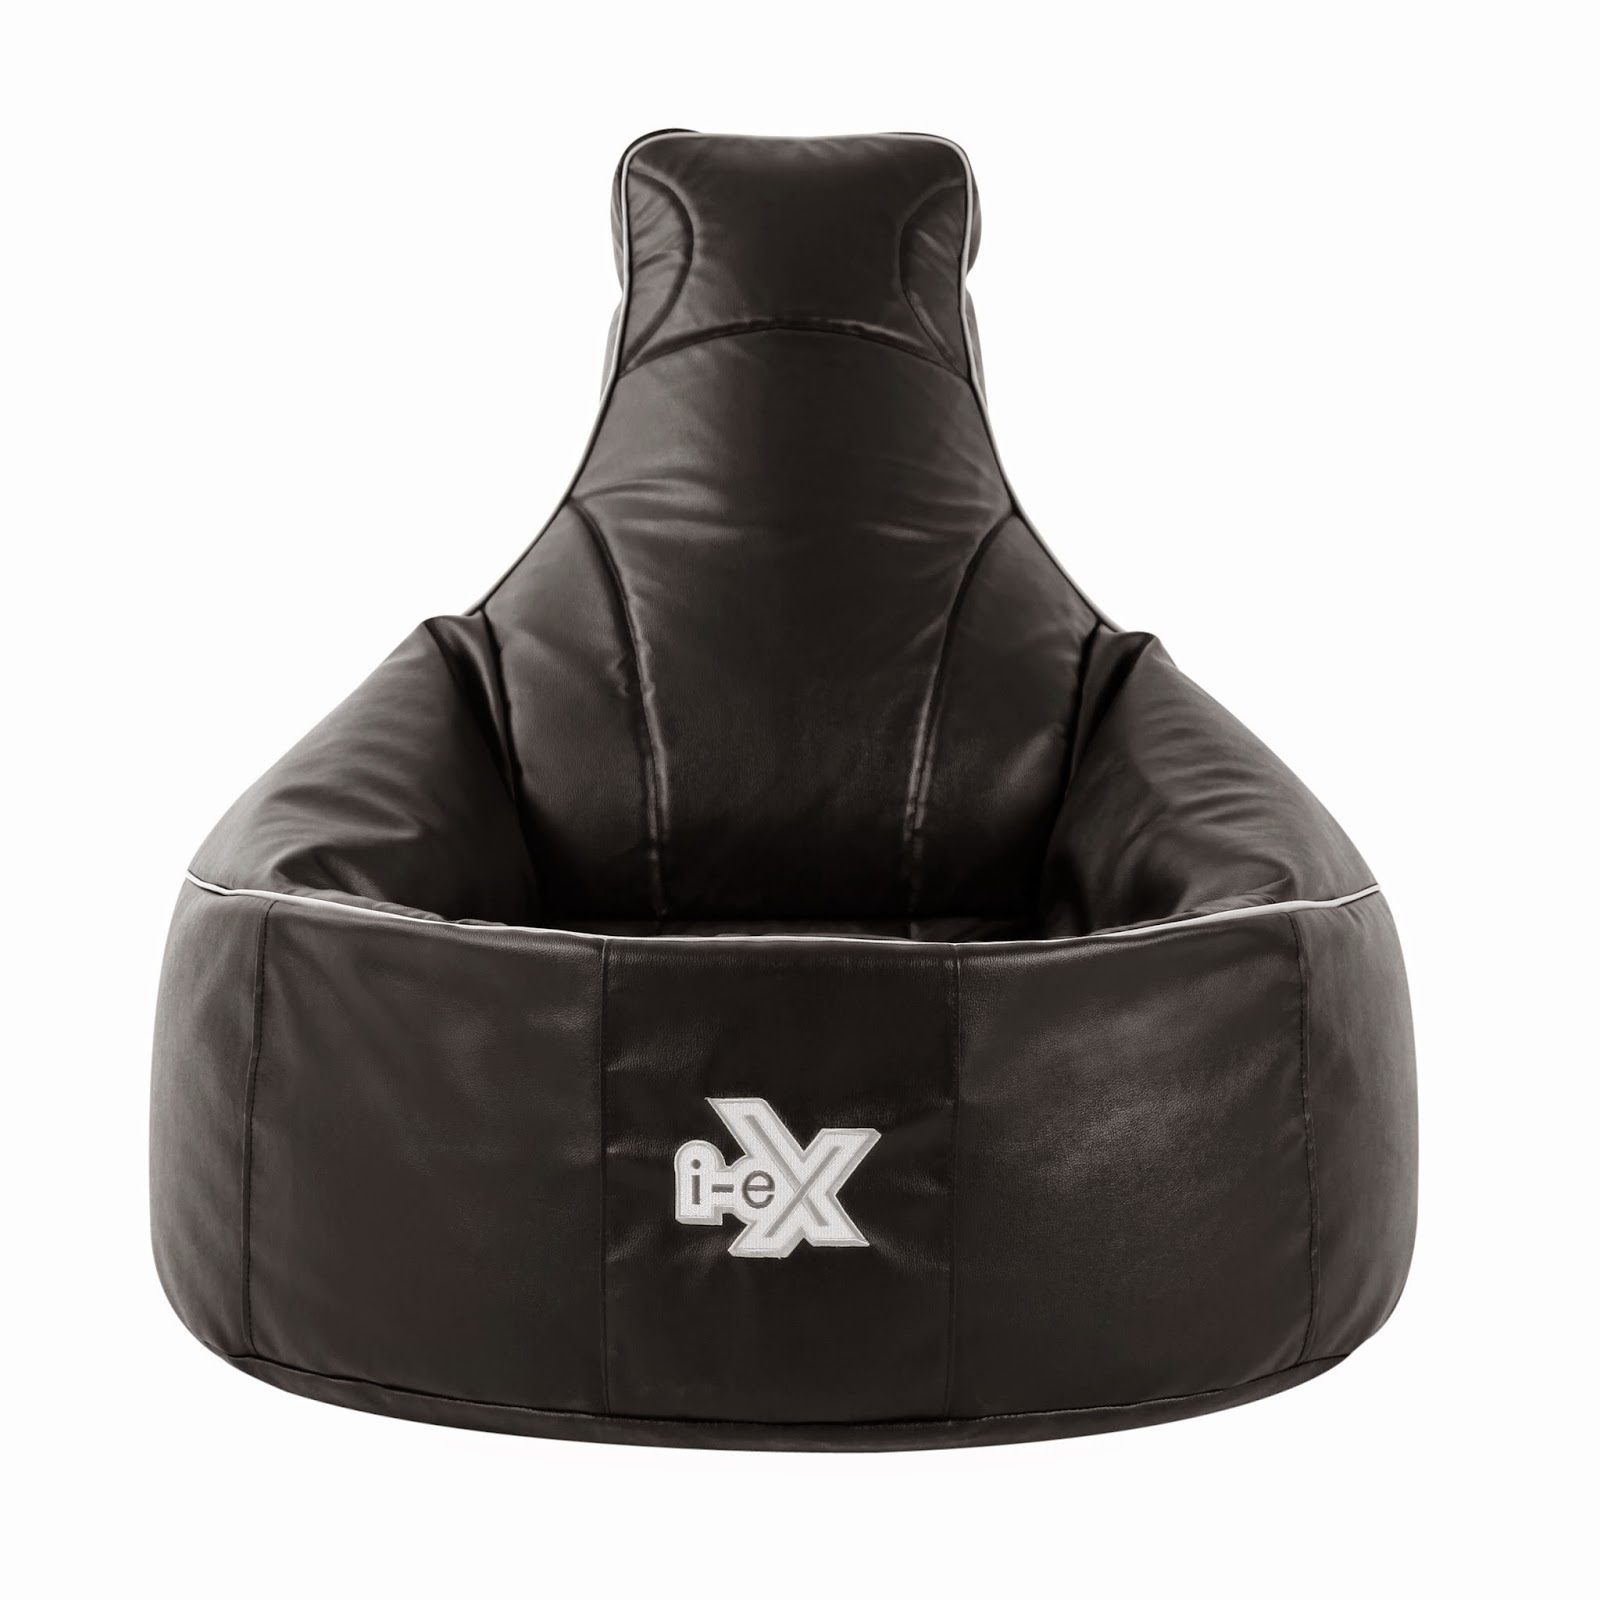 REVIEW: i-eX Bean Bag Gaming Chair | The Test Pit